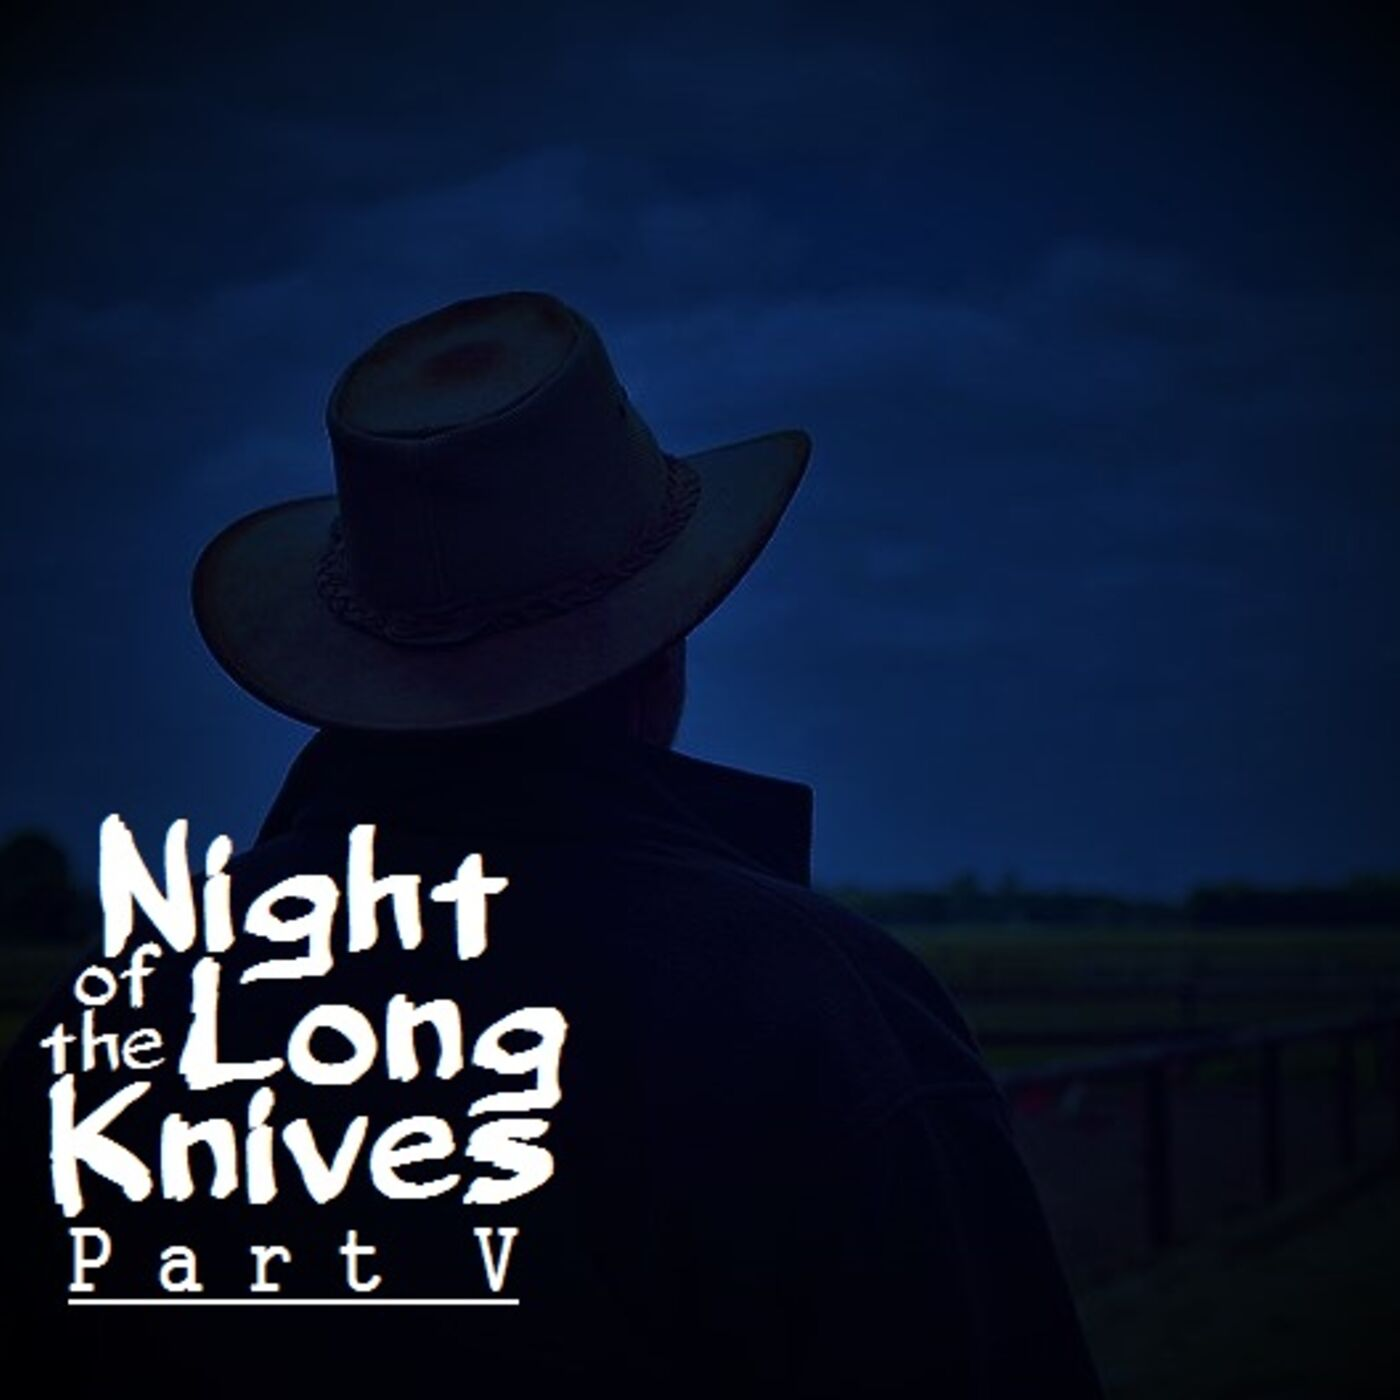 Night of the Long Knives Part V